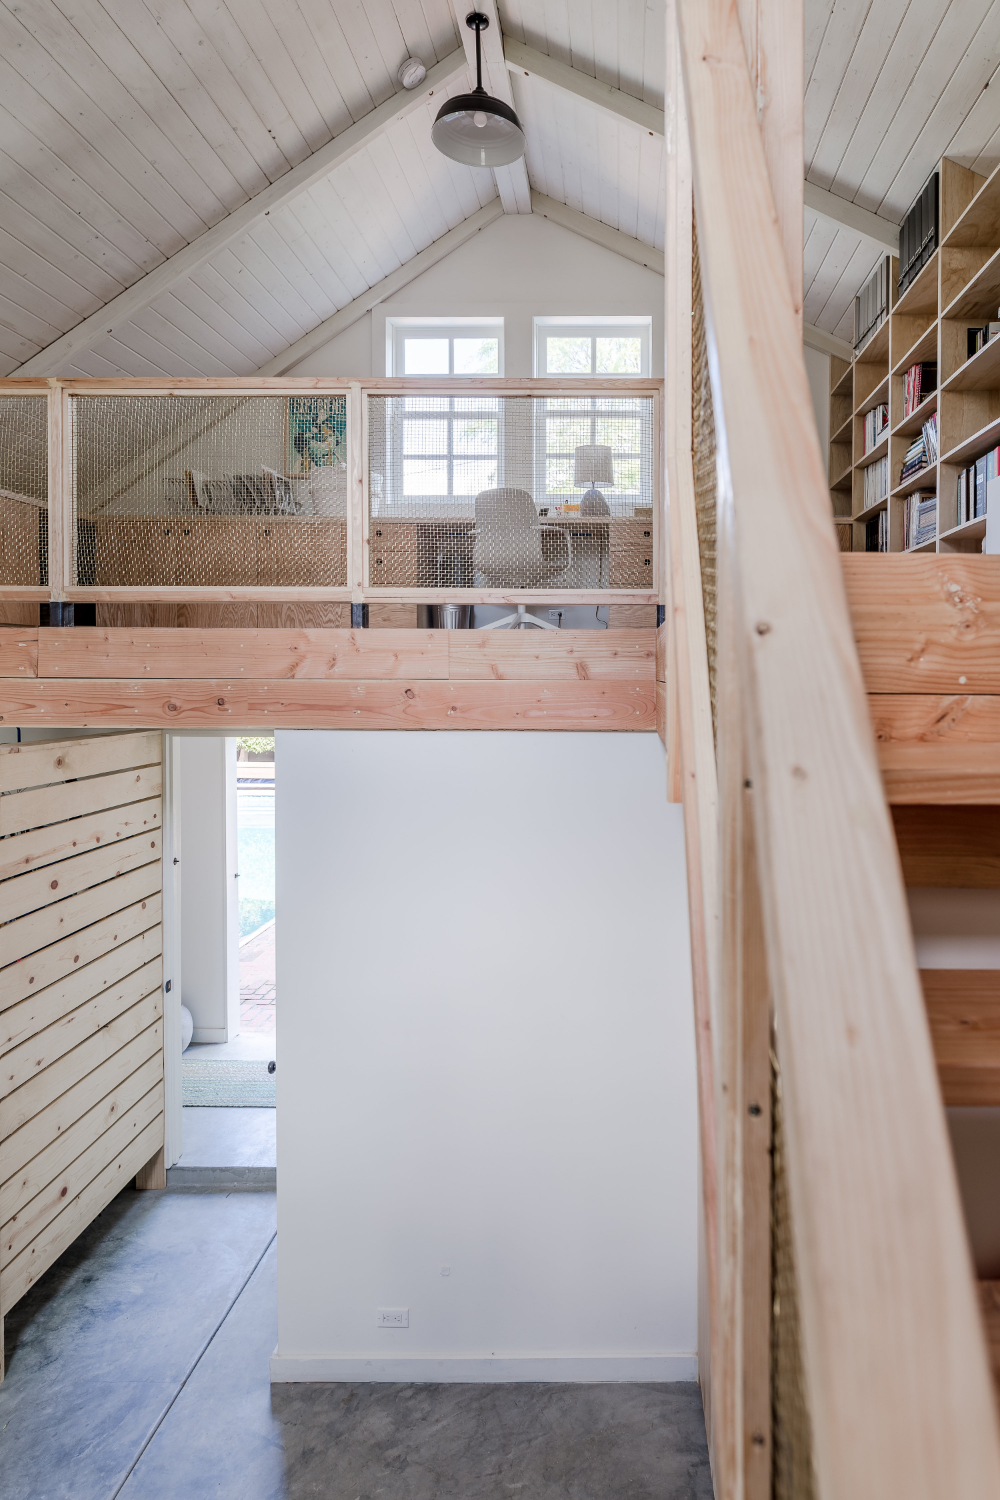 Small-Space Living: A Garage Conversion that Prioritizes Smart Storage